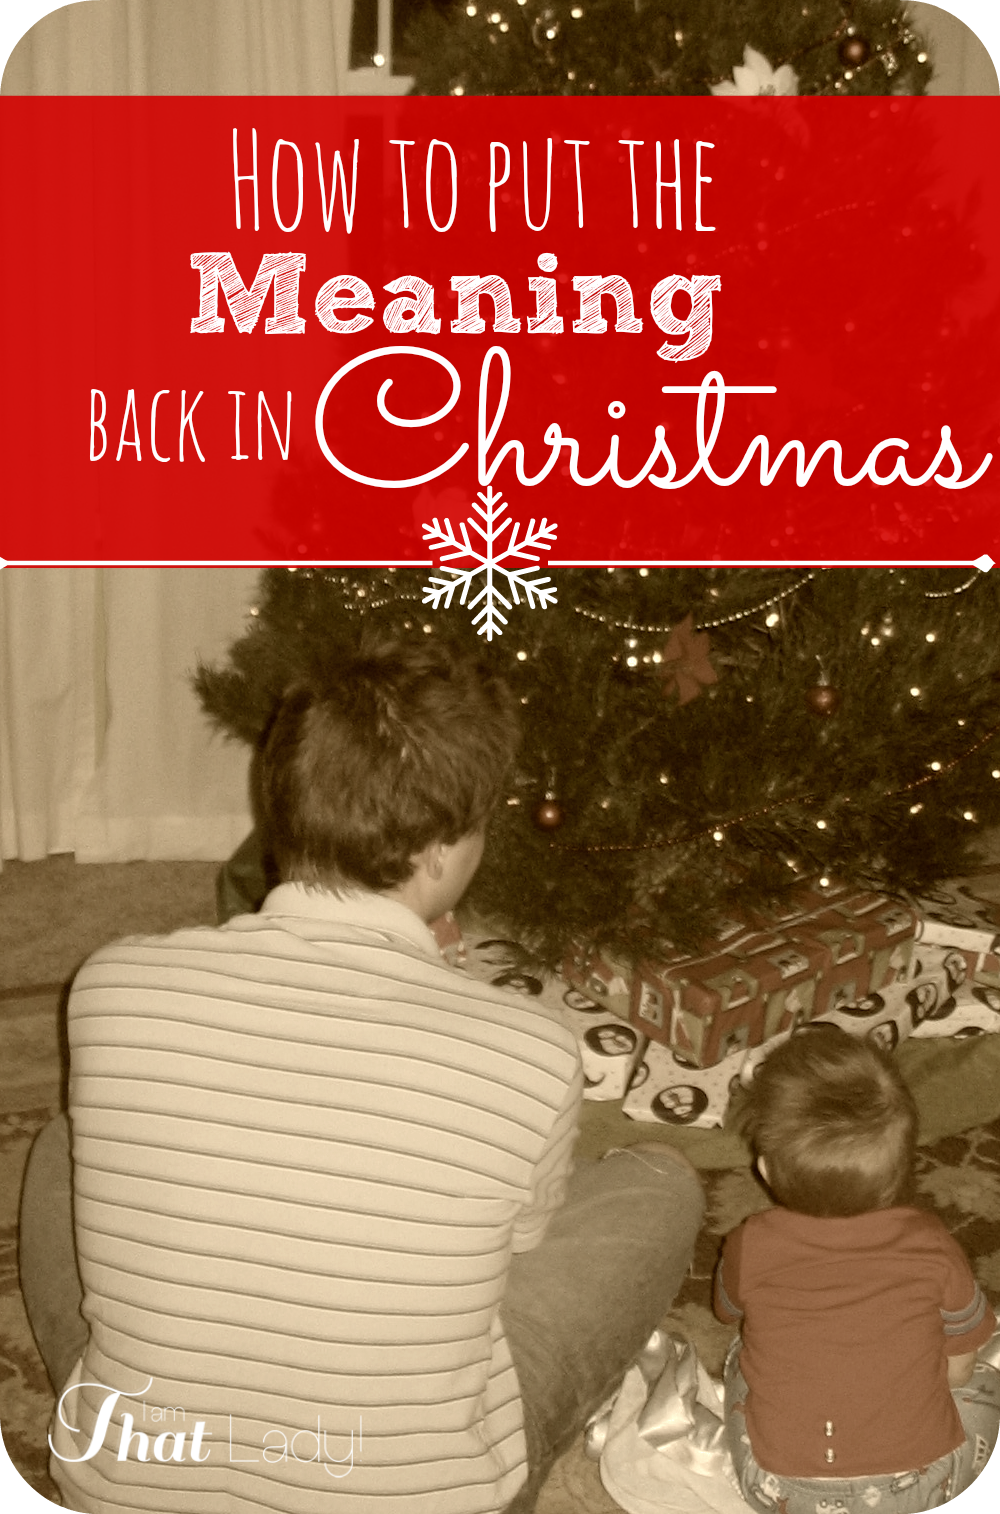 Are you sick and tired of going broke every Christmas only to have a gift giving hangover in January?  This year I strive to put the meaning back in Christmas and hope you will join me too! Head on over to see this 3 step challenge and join me!